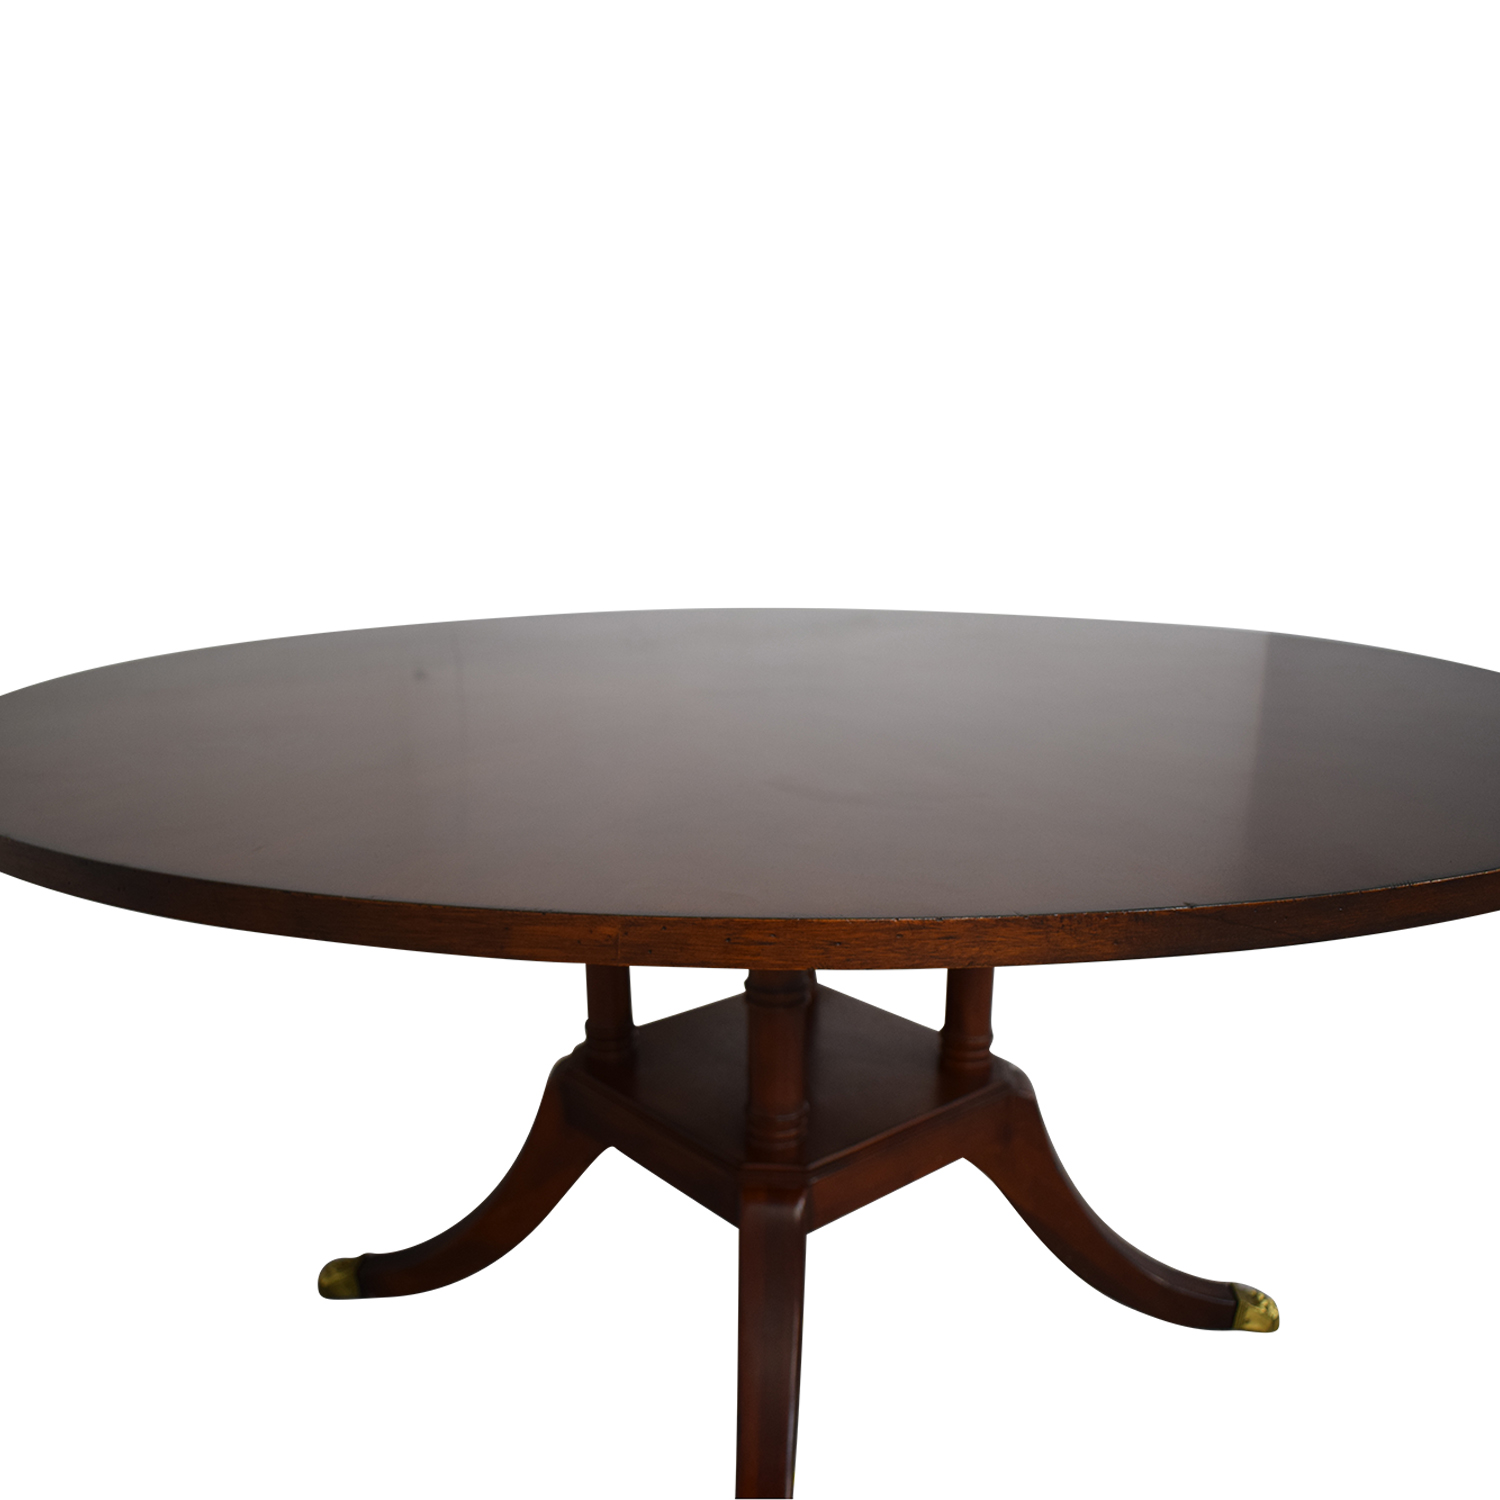 Drexel Heritage Drexel Heritage Round Dining Table second hand